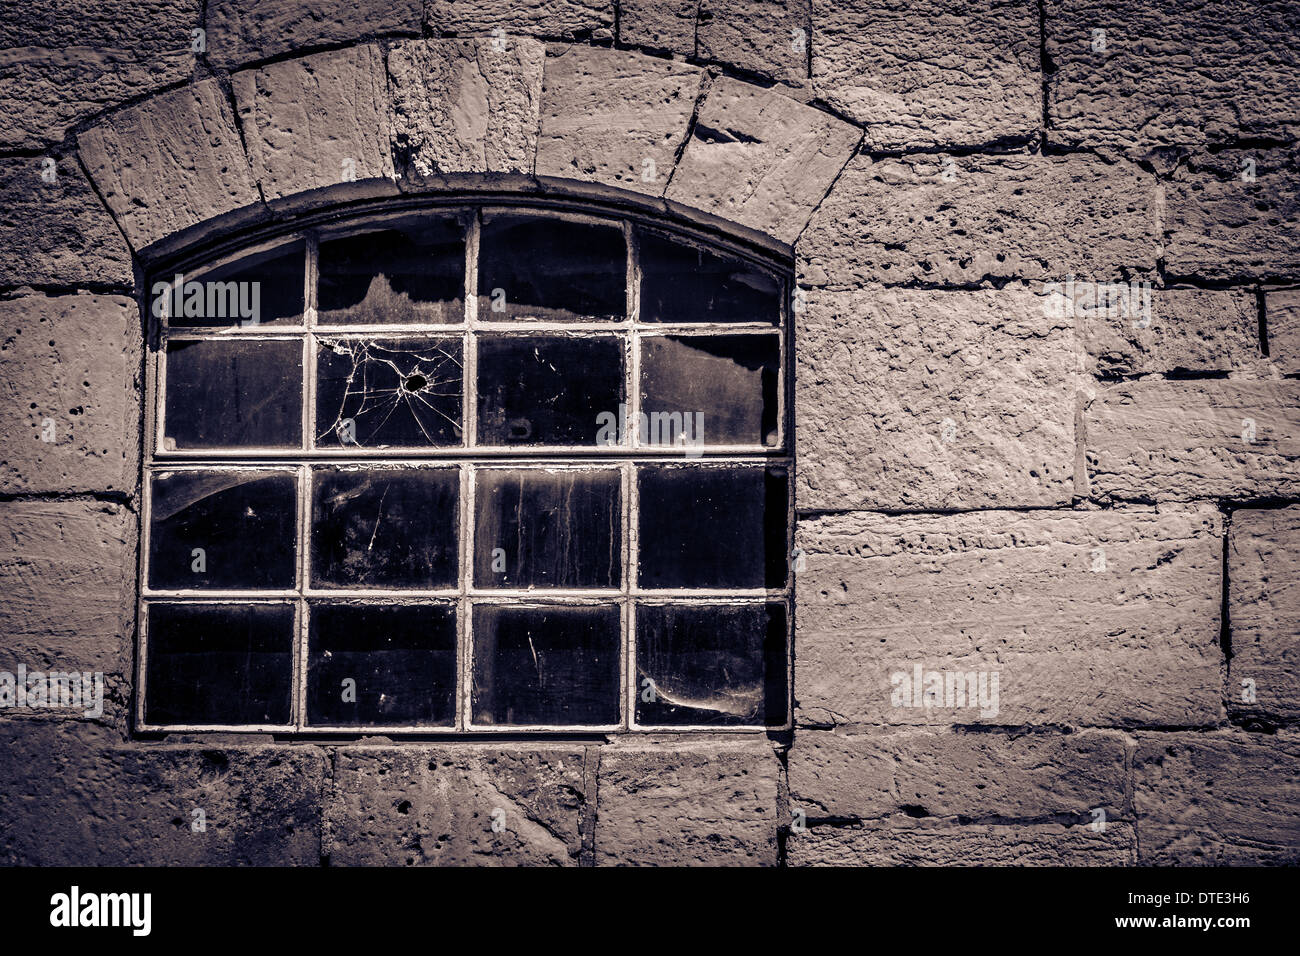 Ancient window in a stone cottage with a bullet hole in the glass - Stock Image